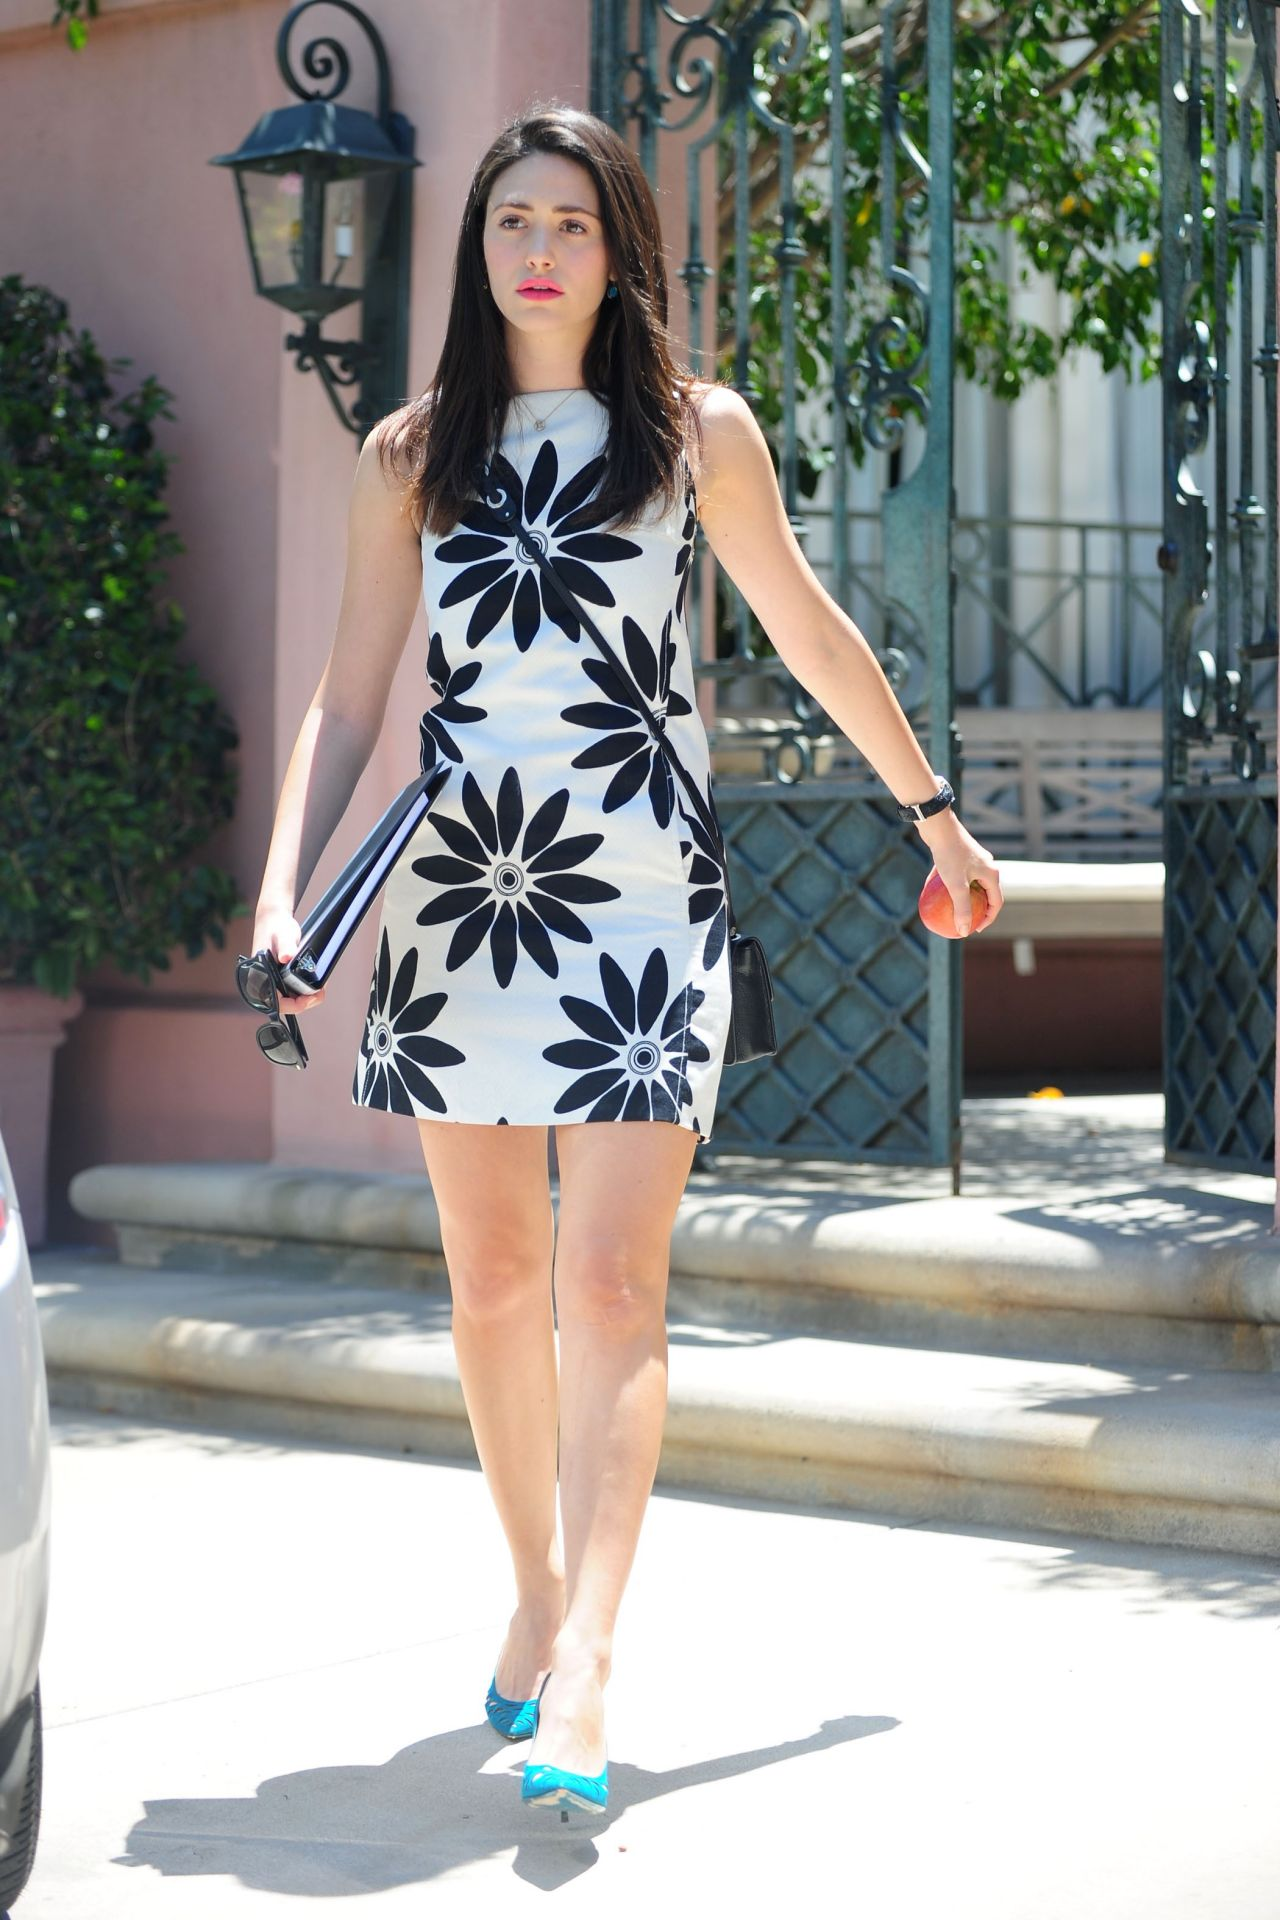 Emmy Rossum Shows Off Her Long Legs In Mini Dress